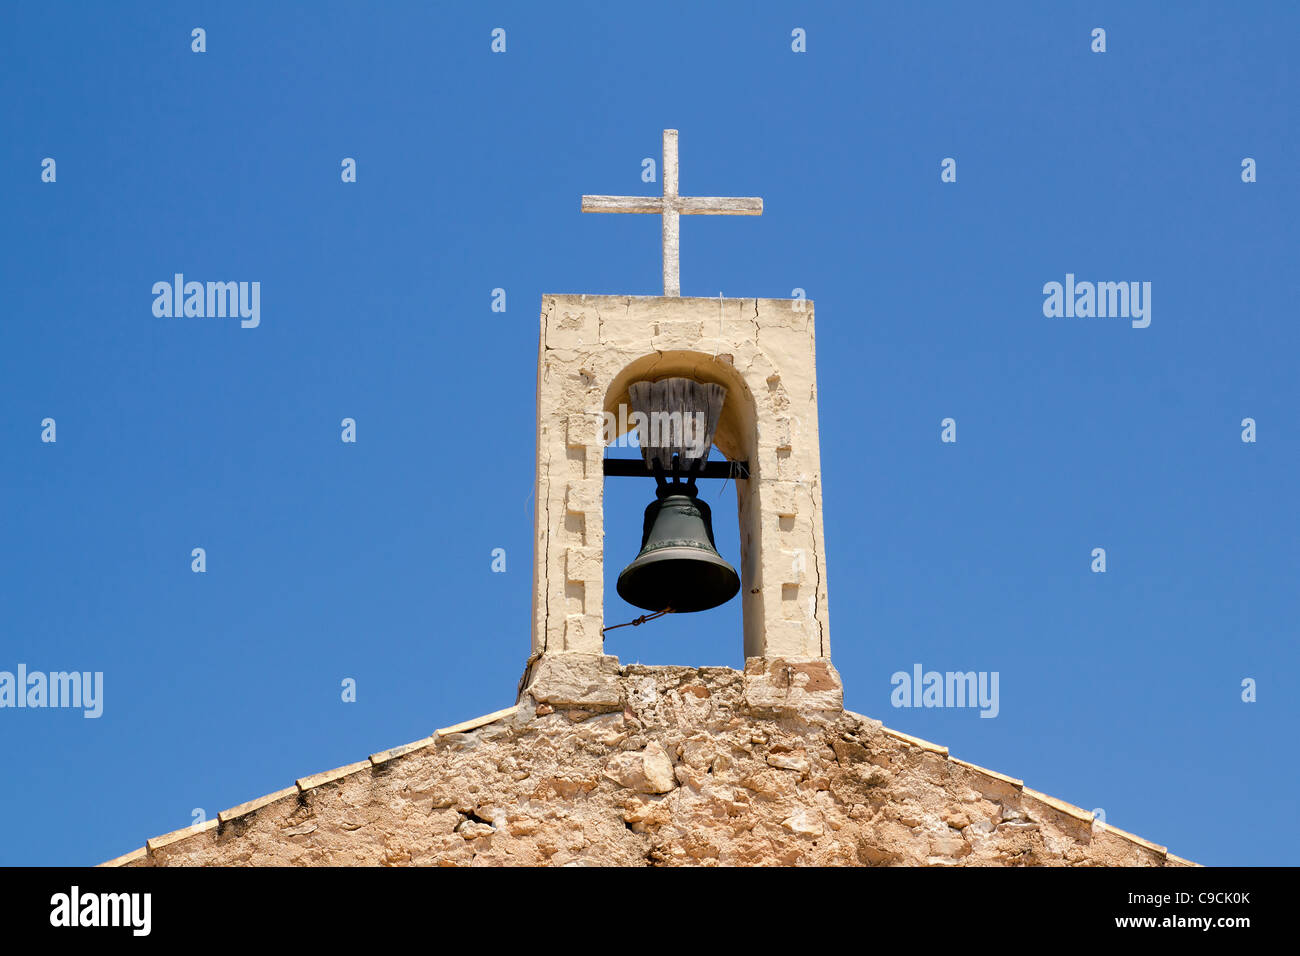 Sant Ferran church stone belfry detail in Formentera island of Spain - Stock Image